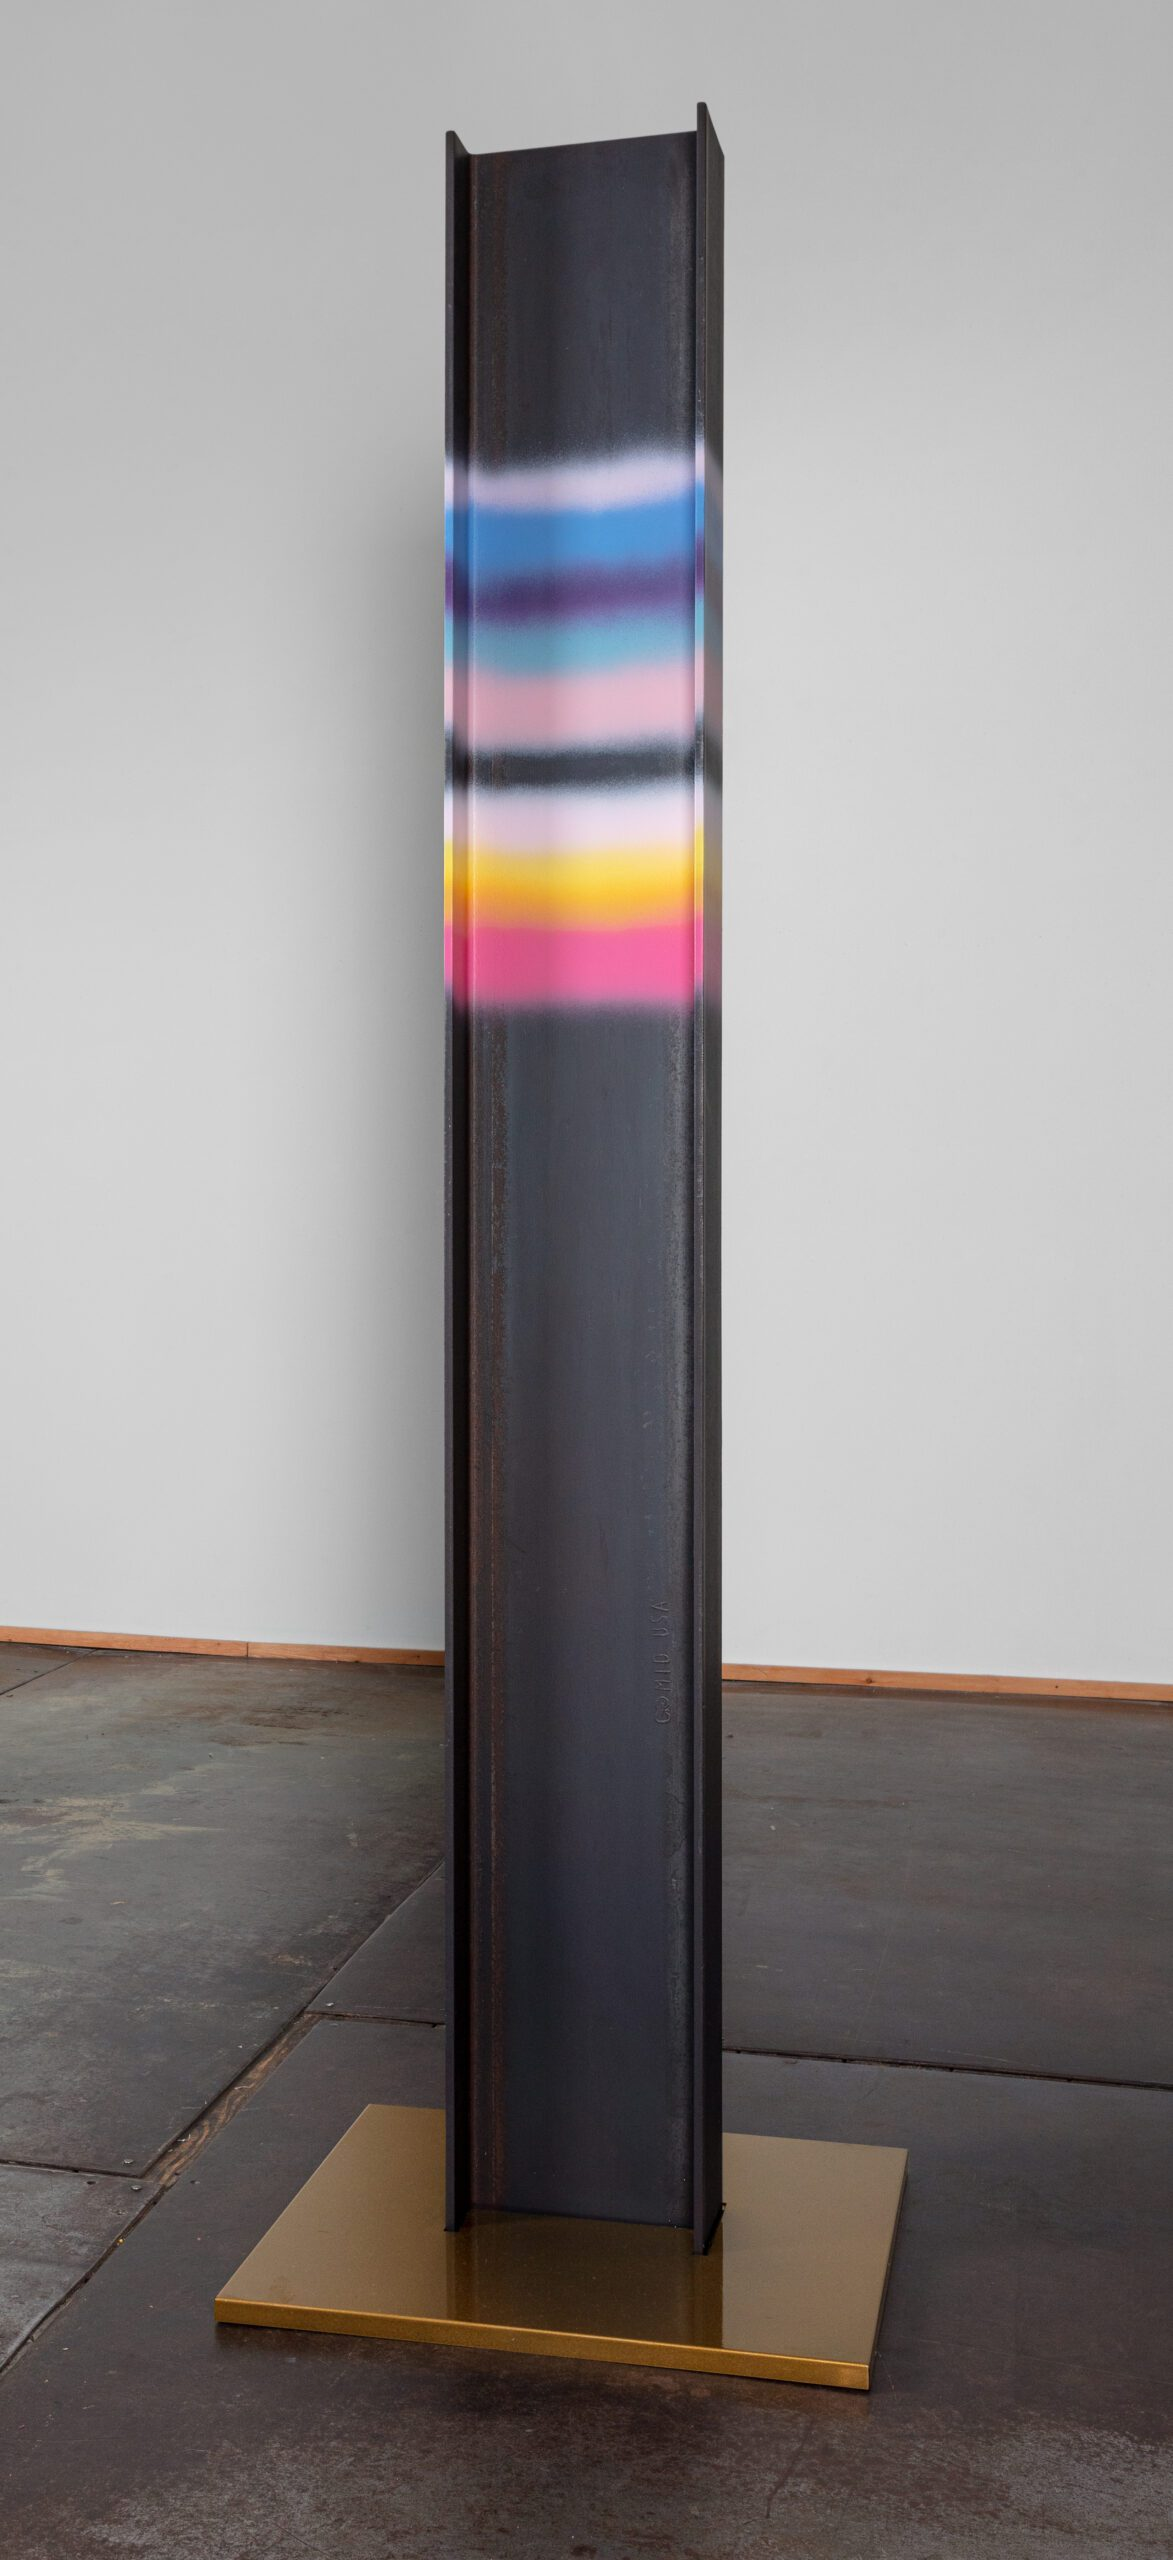 Marie Watt (b. 1967)  Steel I-beam, cold rolled steel cap  96 x 24 x 24 inches  (243.84 x 60.96 x 60.96 cm)  Photography by Kevin McConnell - Marc Straus Gallery